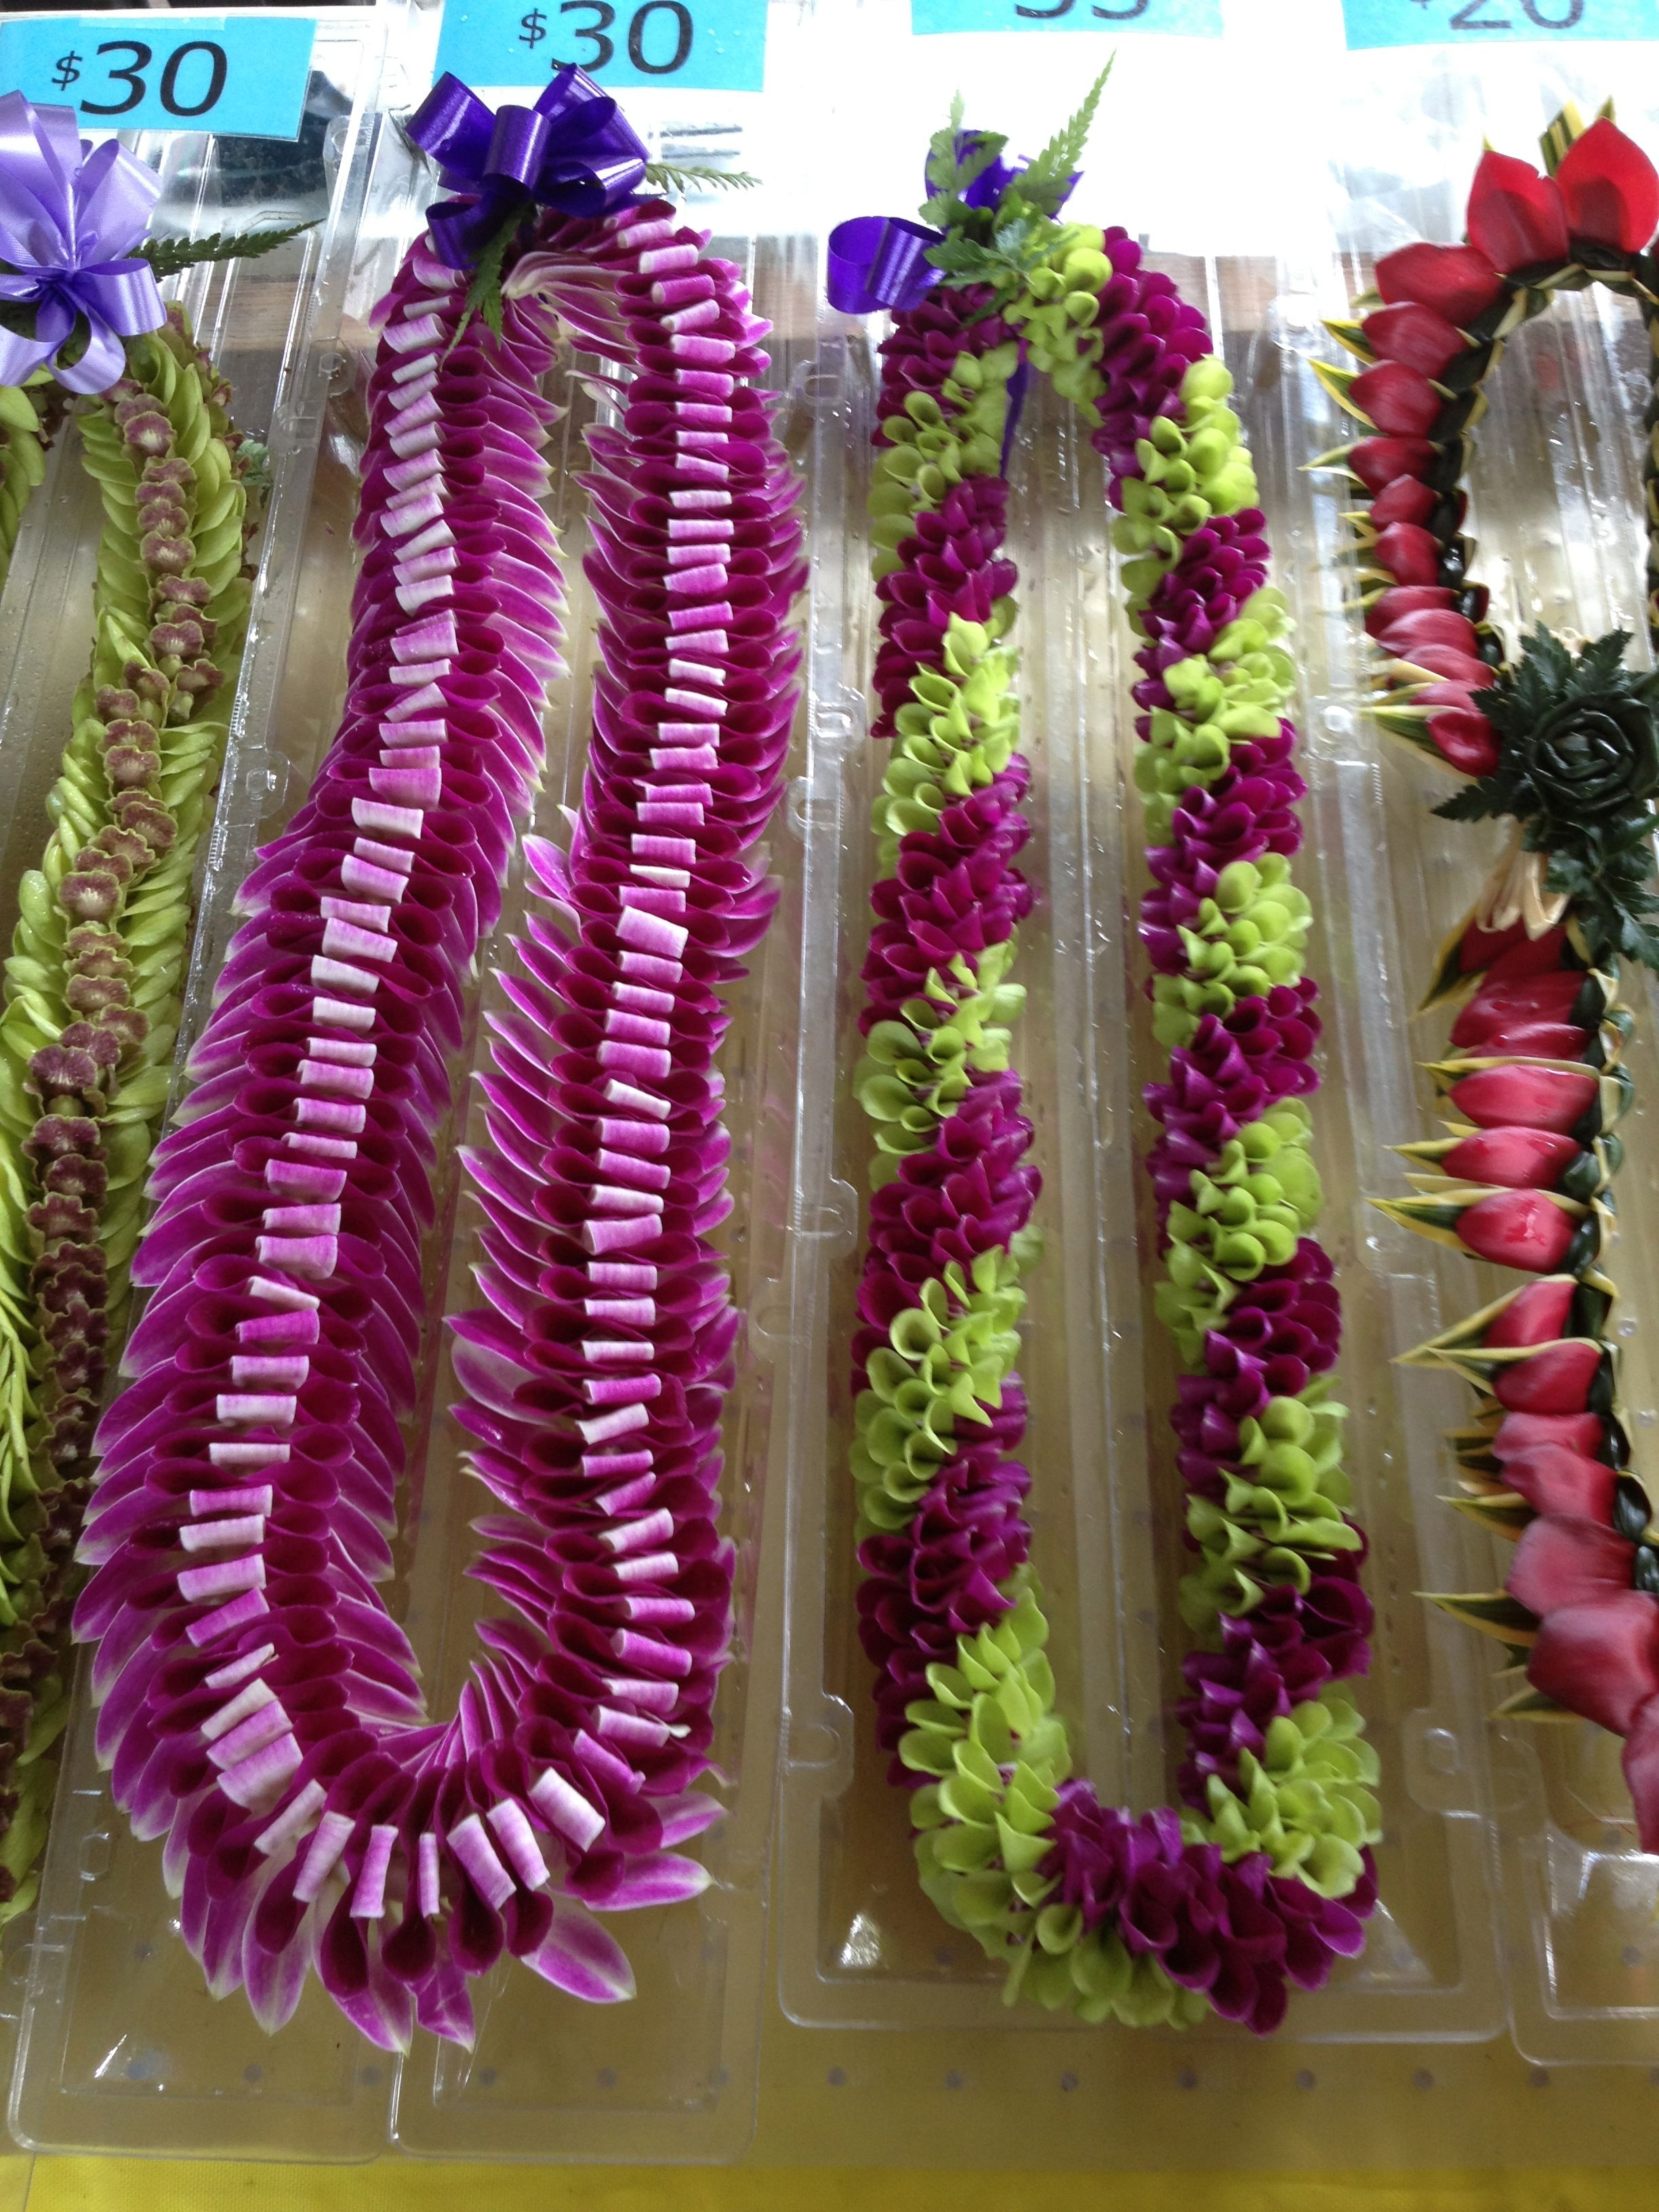 Hilo flower leis at the farmers market leis pinterest leis hilo flower leis at the farmers market izmirmasajfo